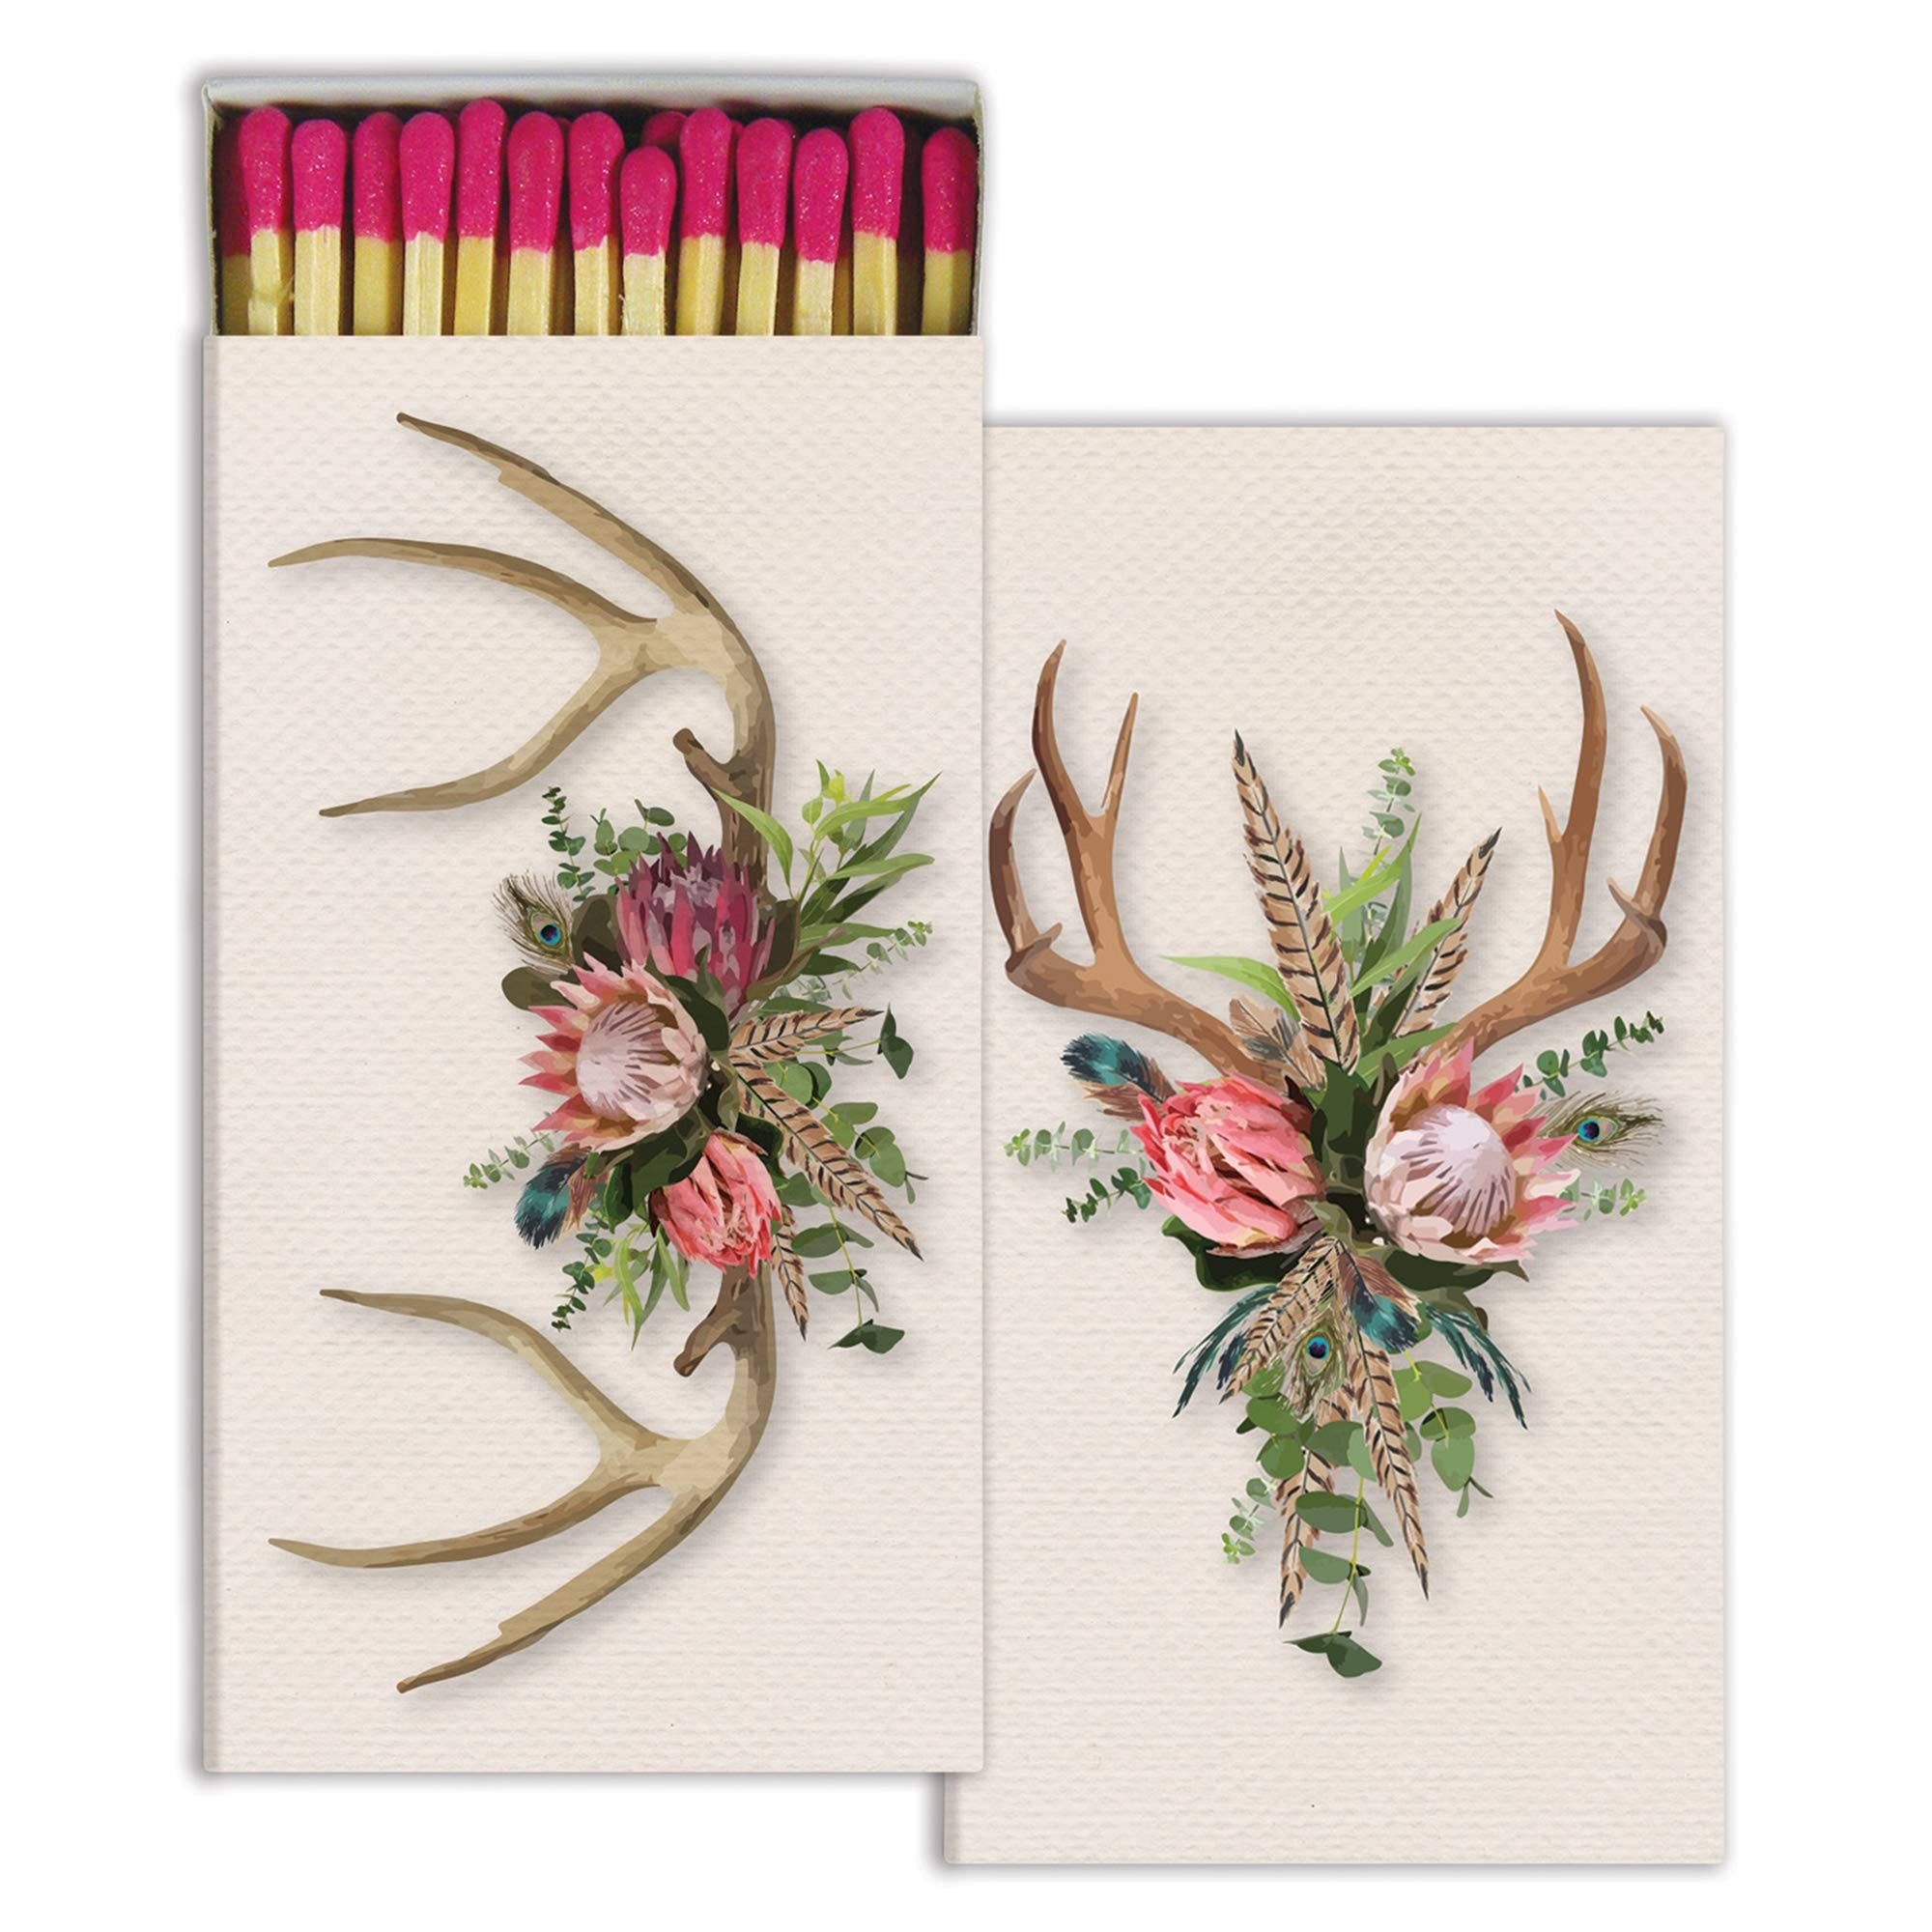 Decorative Bohemian Antlers Match Boxes with Long Kitchen Matches Great for Lighting Candles, Grills, Fireplaces and More | Set of 10 Large Match Boxes